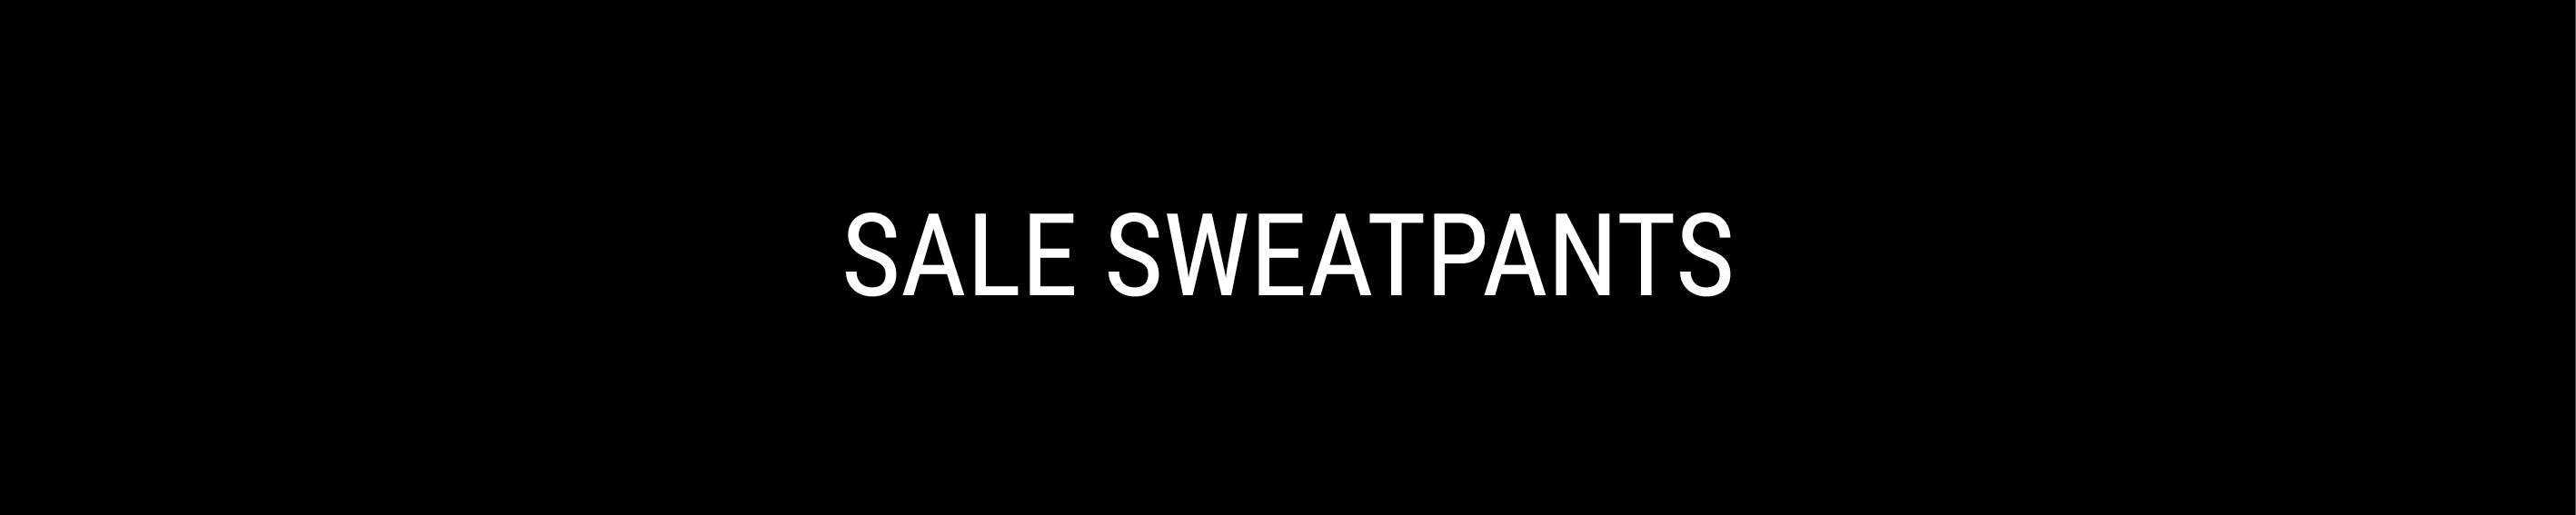 Activewear Sale Sweatpants with Discounts